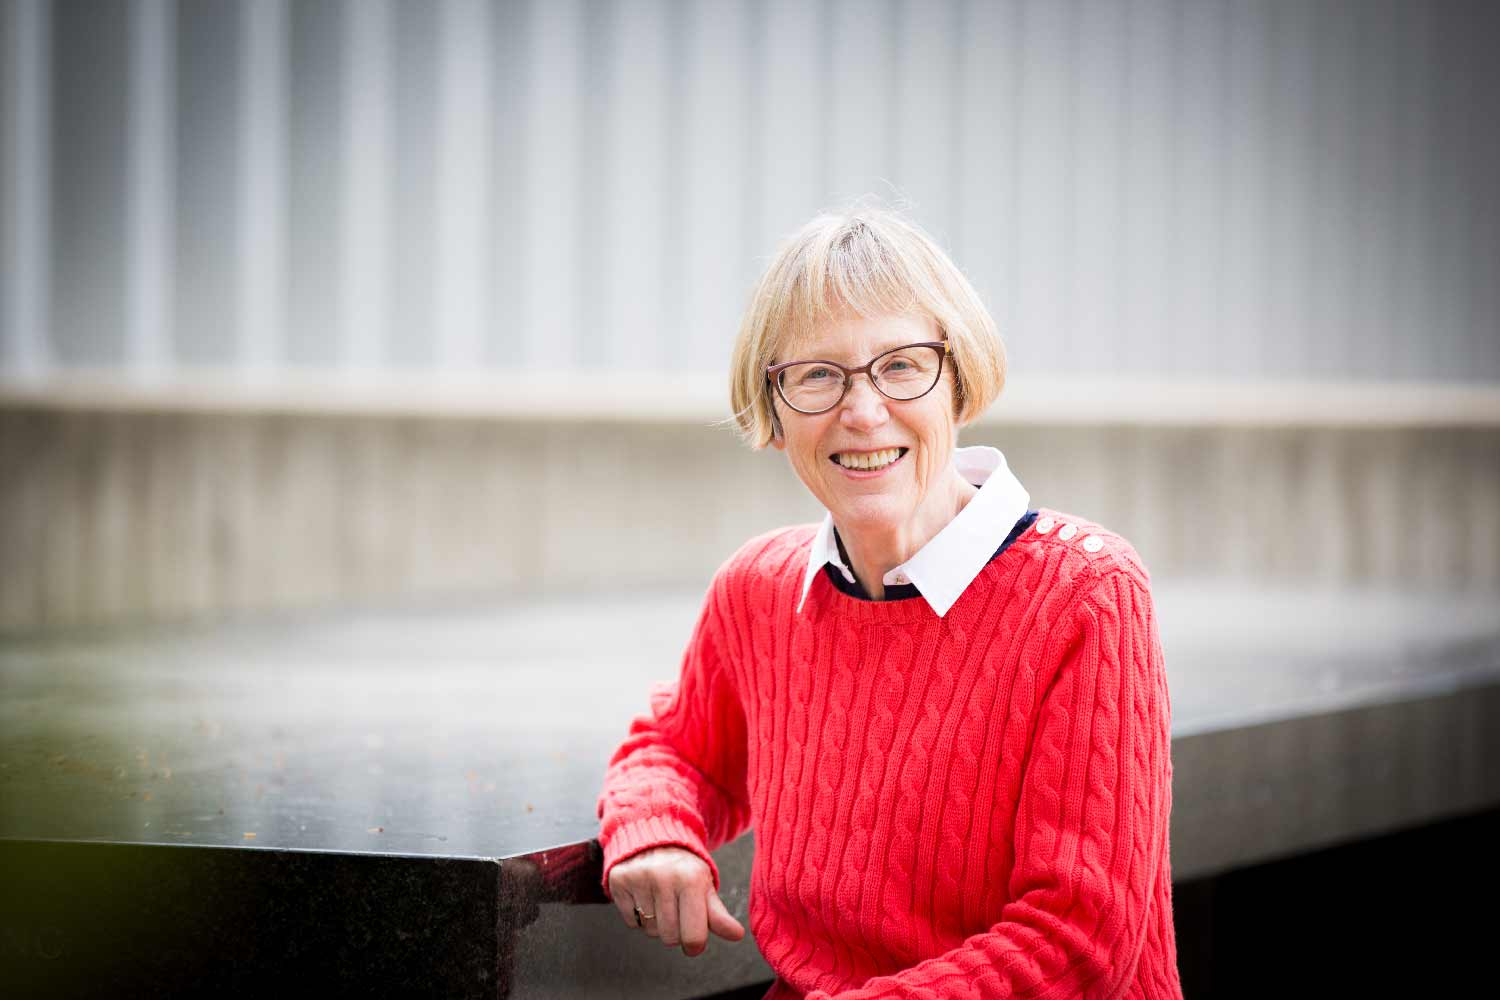 UC San Diego professor Nancy Cartwright